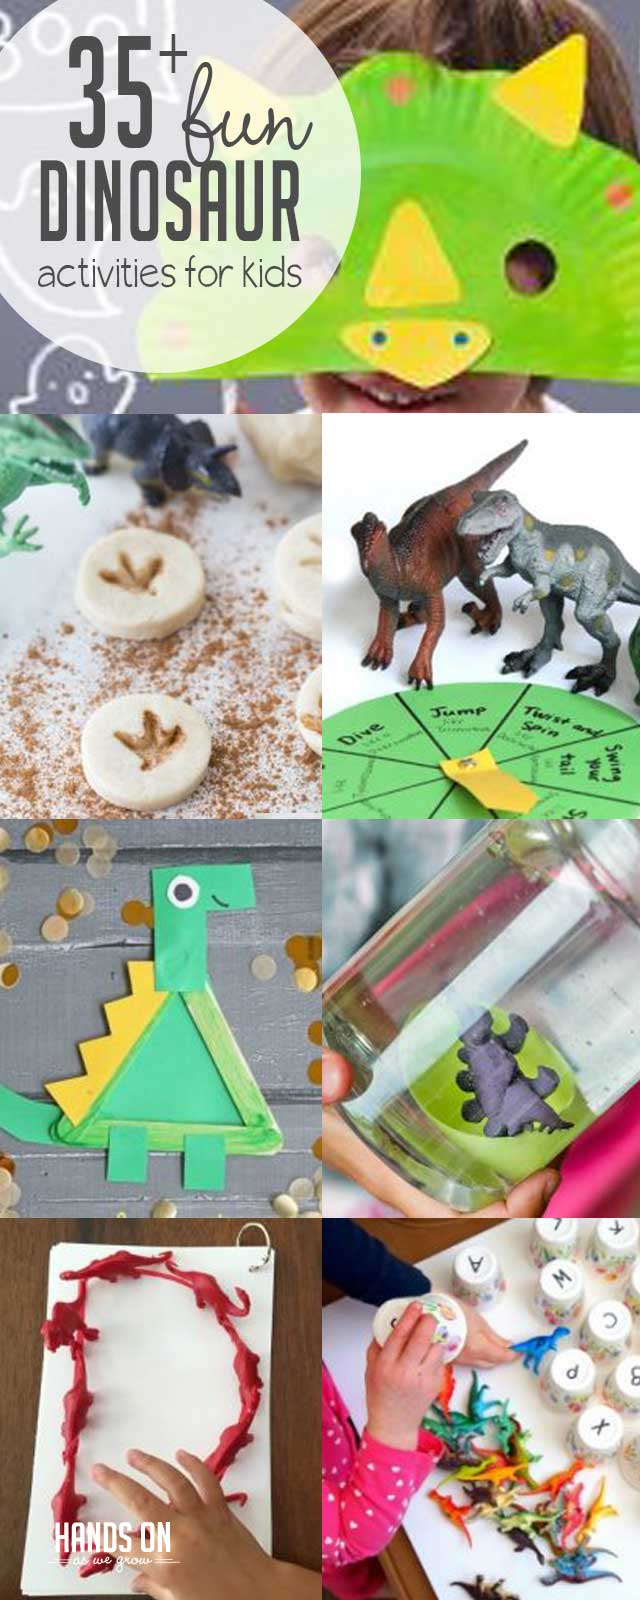 Fun dinosaur activities for kids will make learning together fun! Use our guide to find great dinosaur books, cute sensory activities, and yummy dino snacks. These 35+ dinosaur activity ideas for kids are easy to follow!